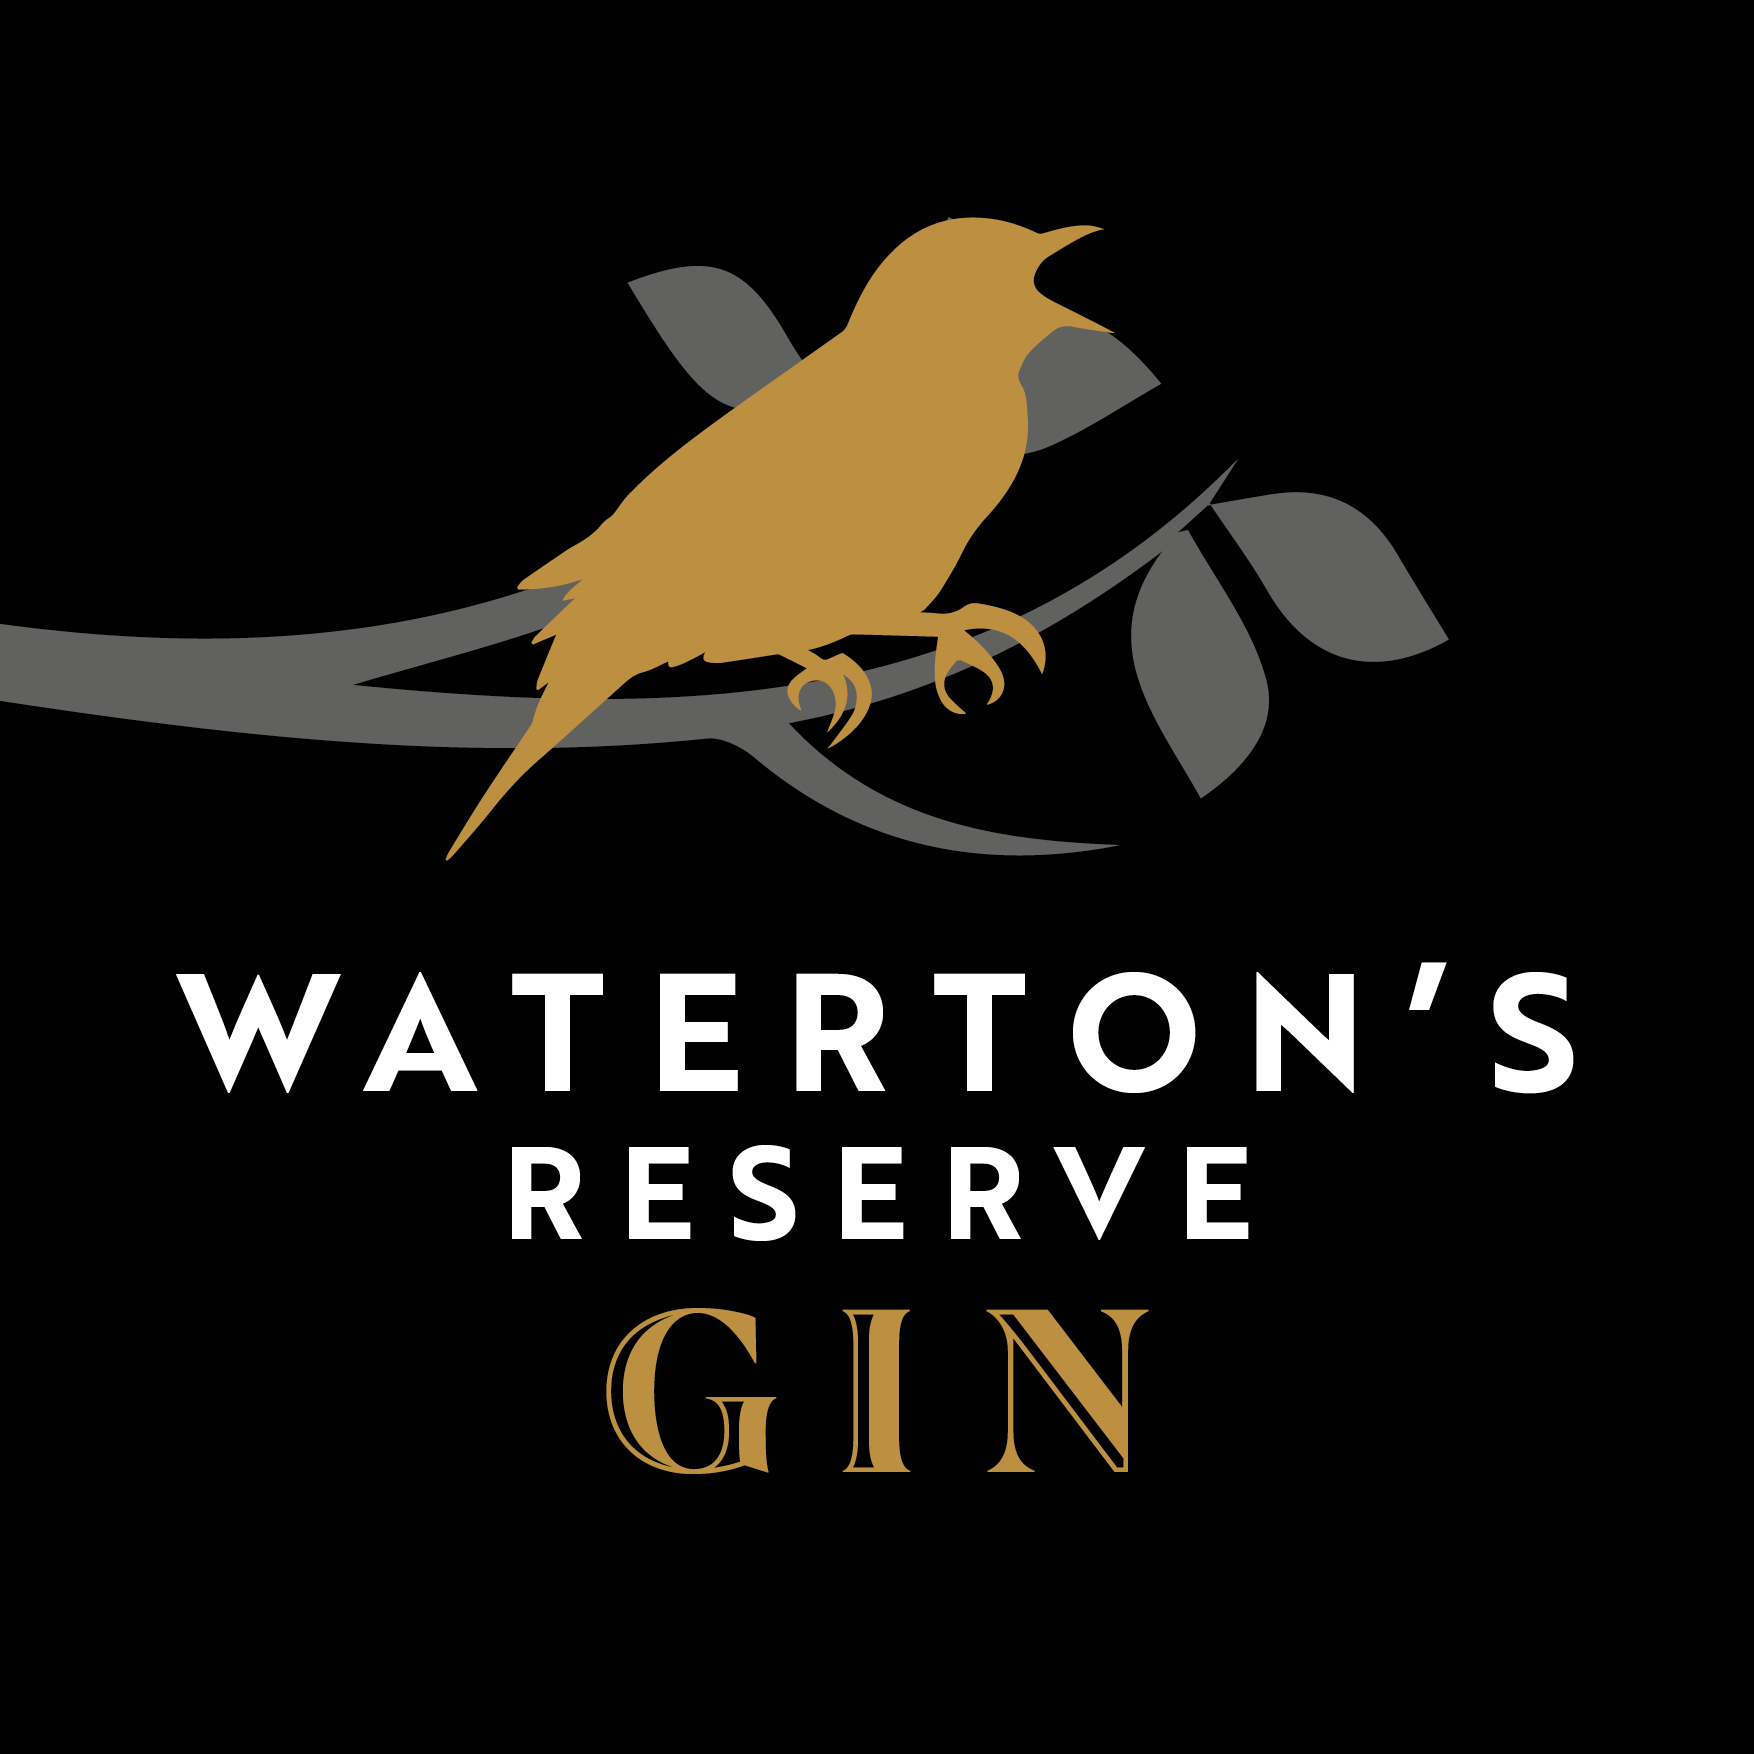 Watertons Resrve - Fine gine crafted in Yorkshire